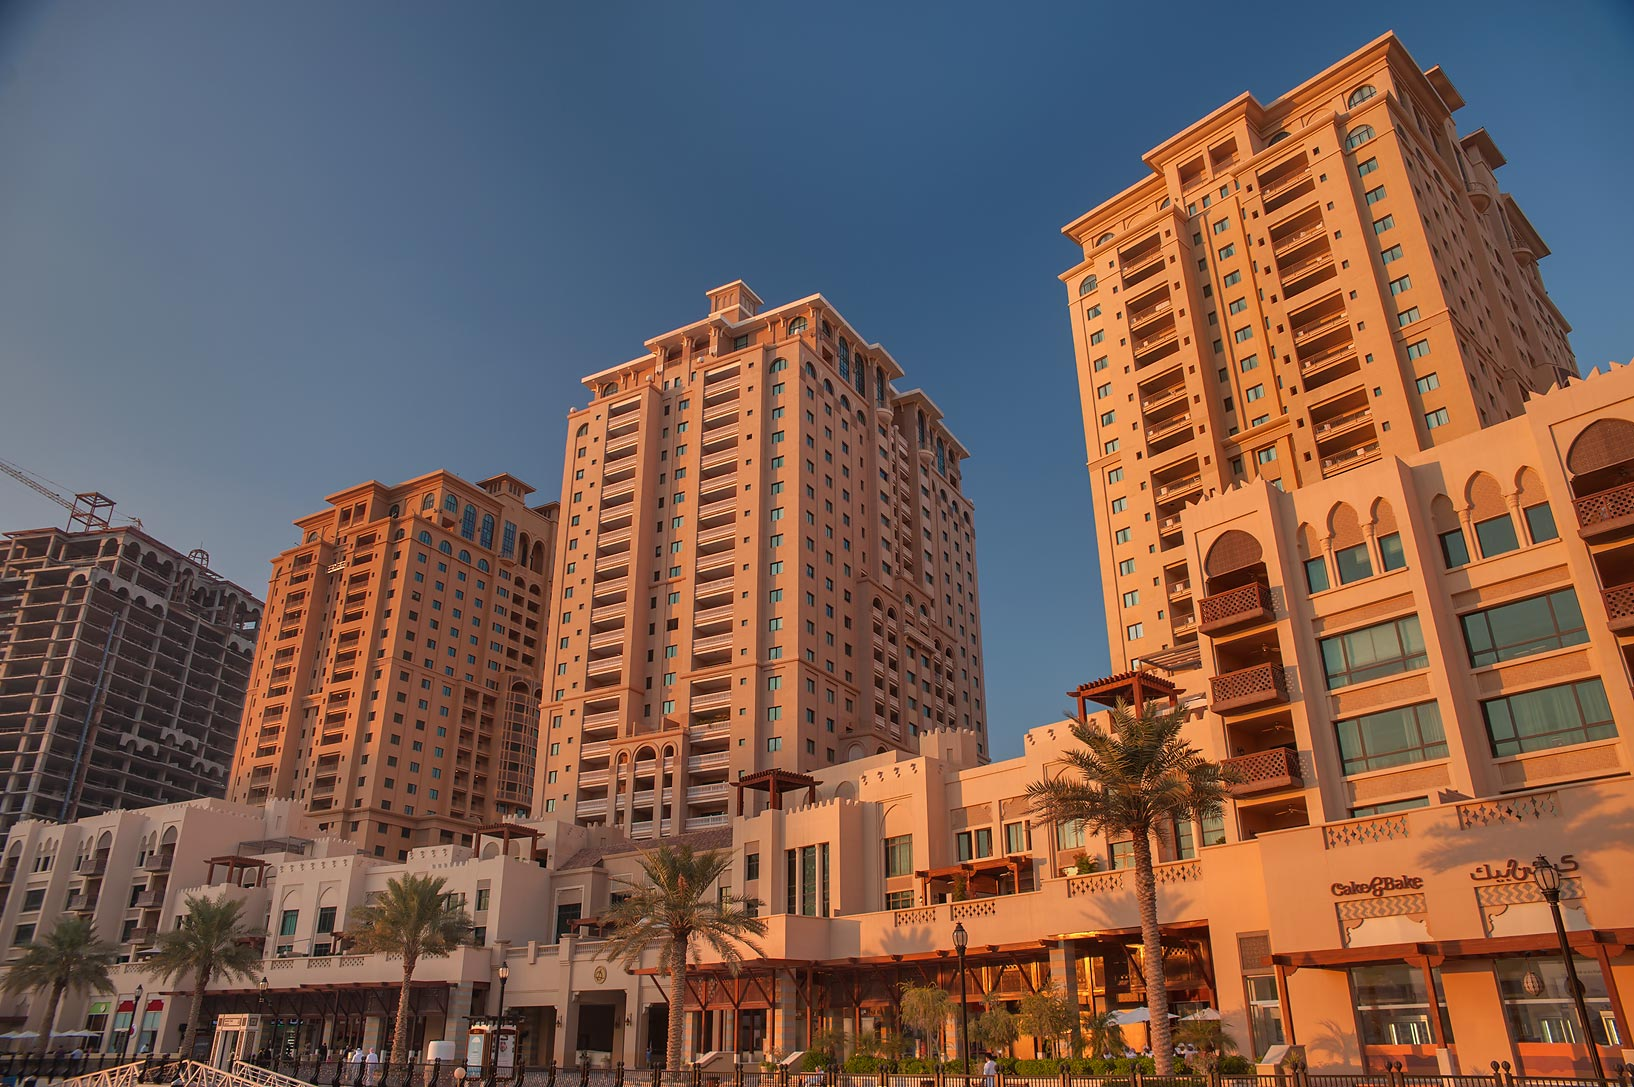 Sunset in Porto Arabia in the Pearl Qatar development. Doha, Qatar